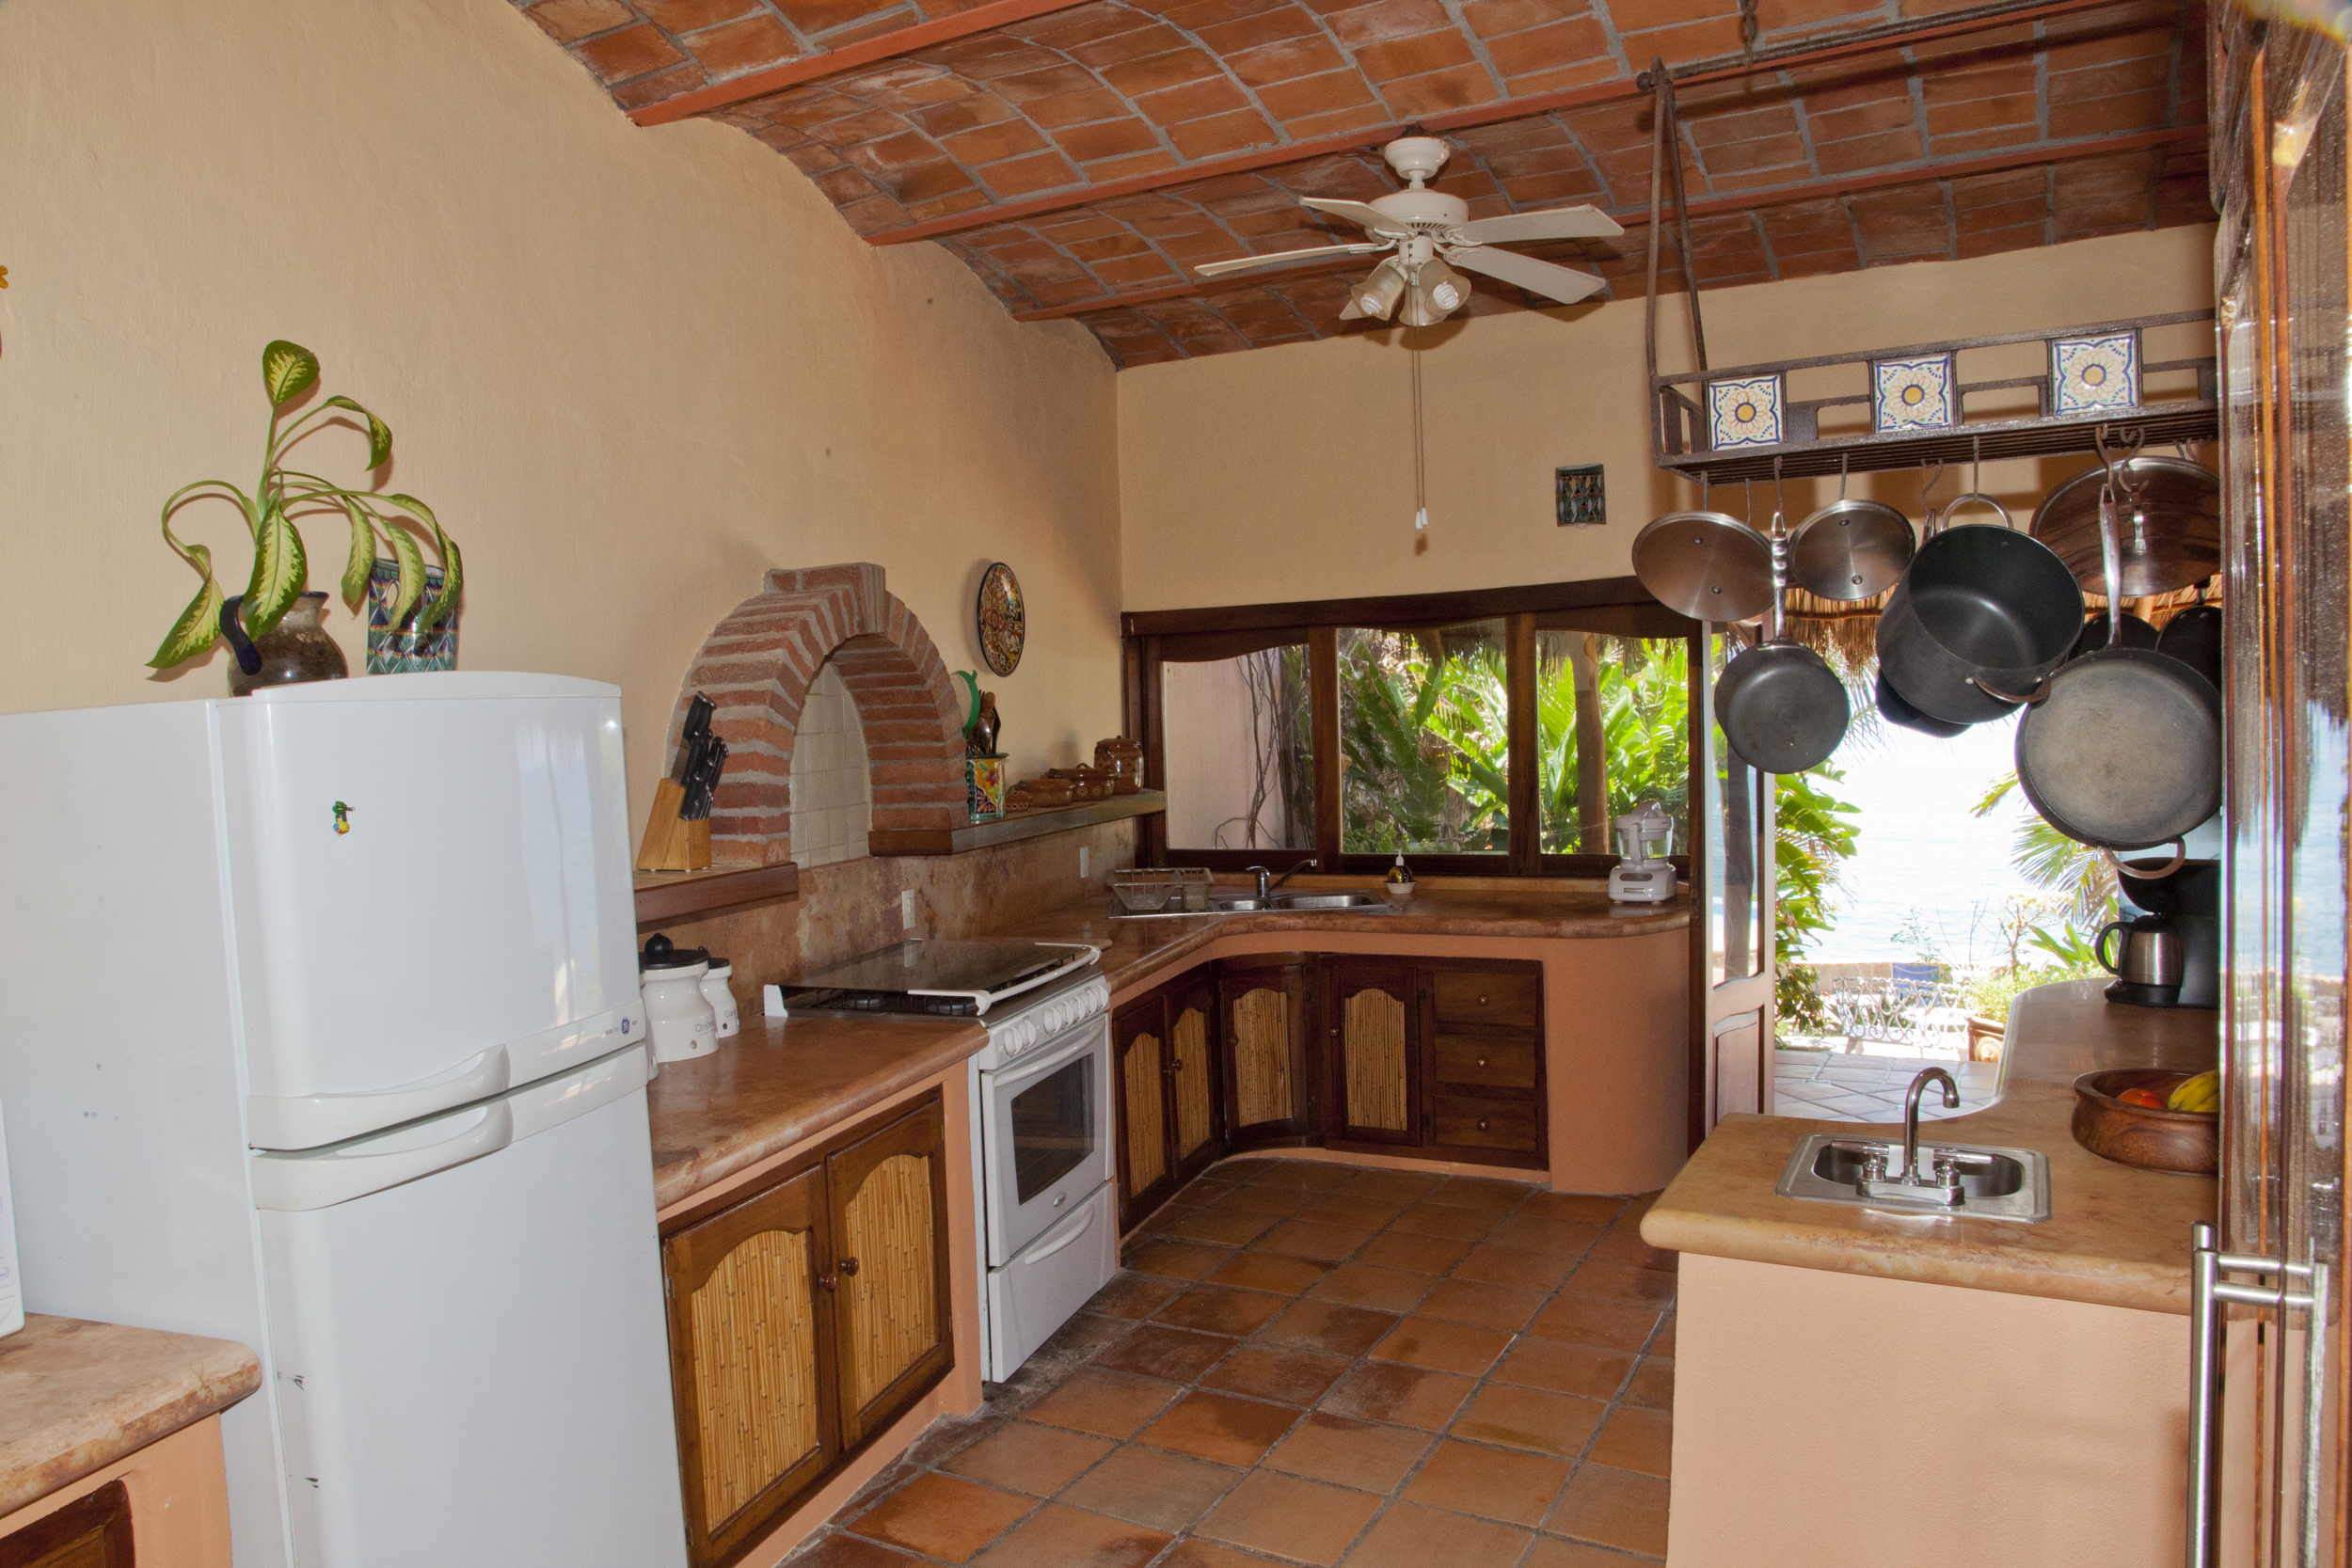 With granite counter tops, gas stove full size refrigerator, pass through windows and separate prep area with second sink, this kitchen can keep up with a family dinner or a full blown party.